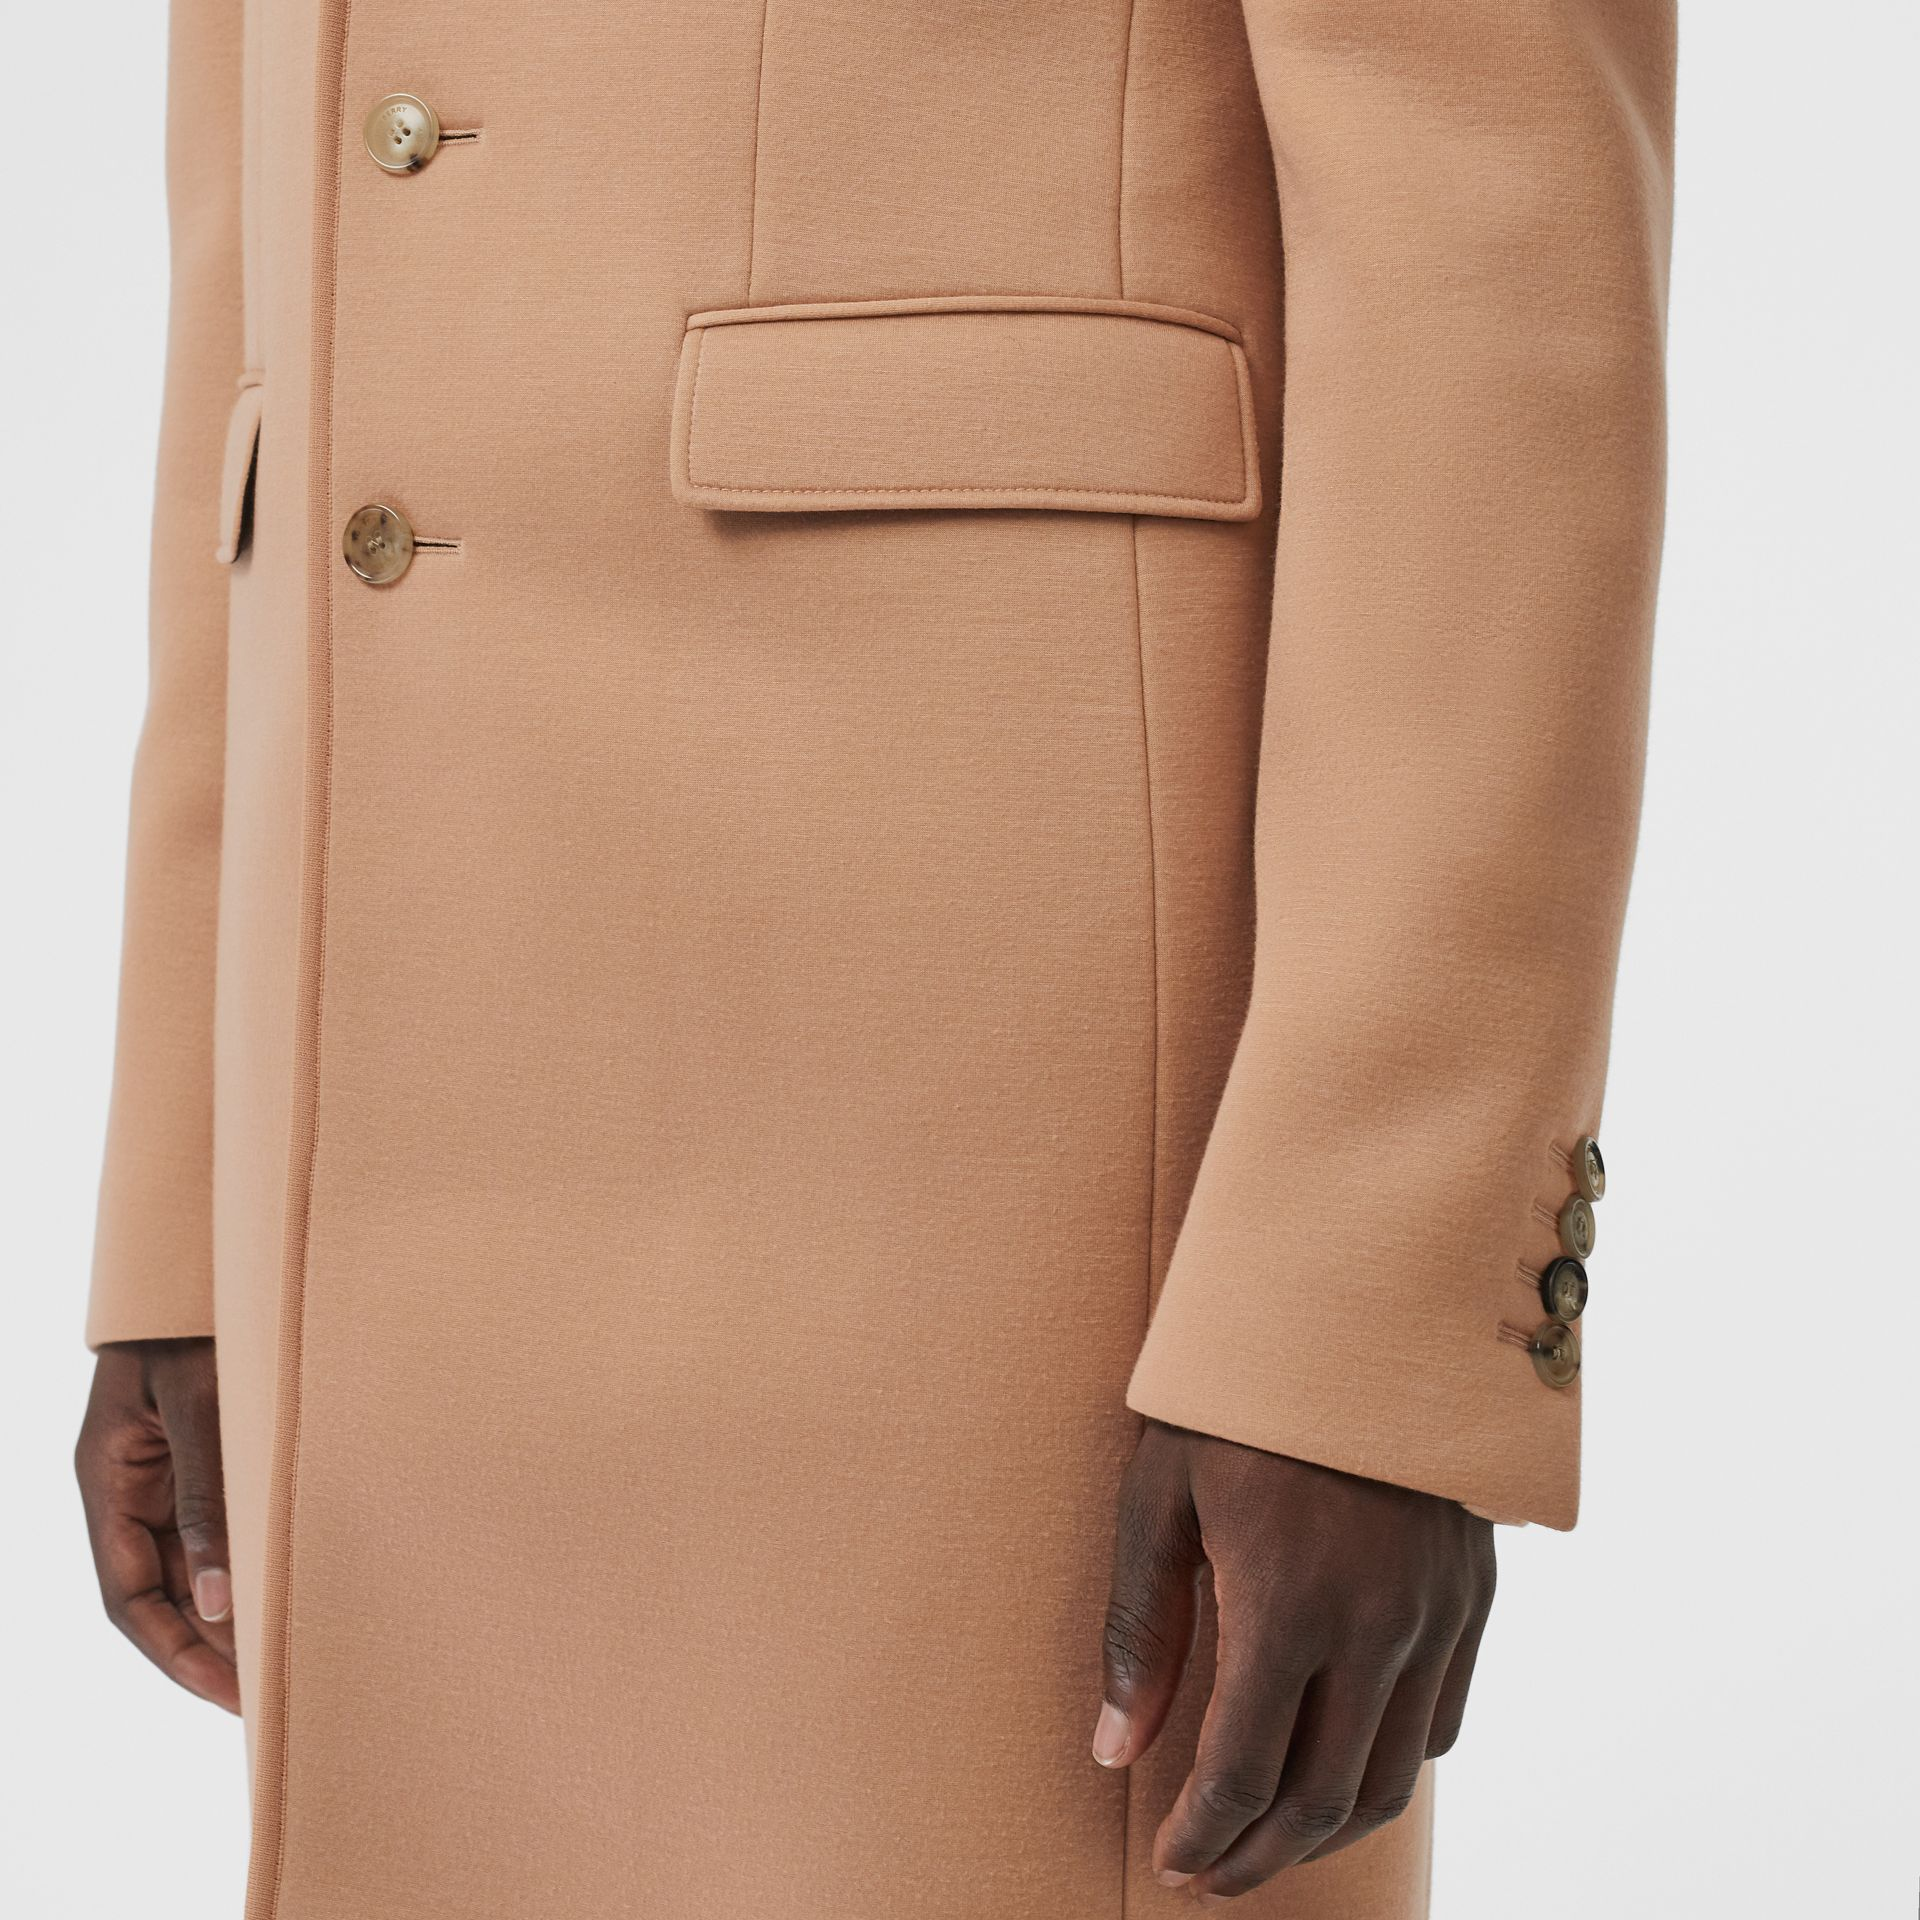 Neoprene Tailored Coat in Beige | Burberry - gallery image 4